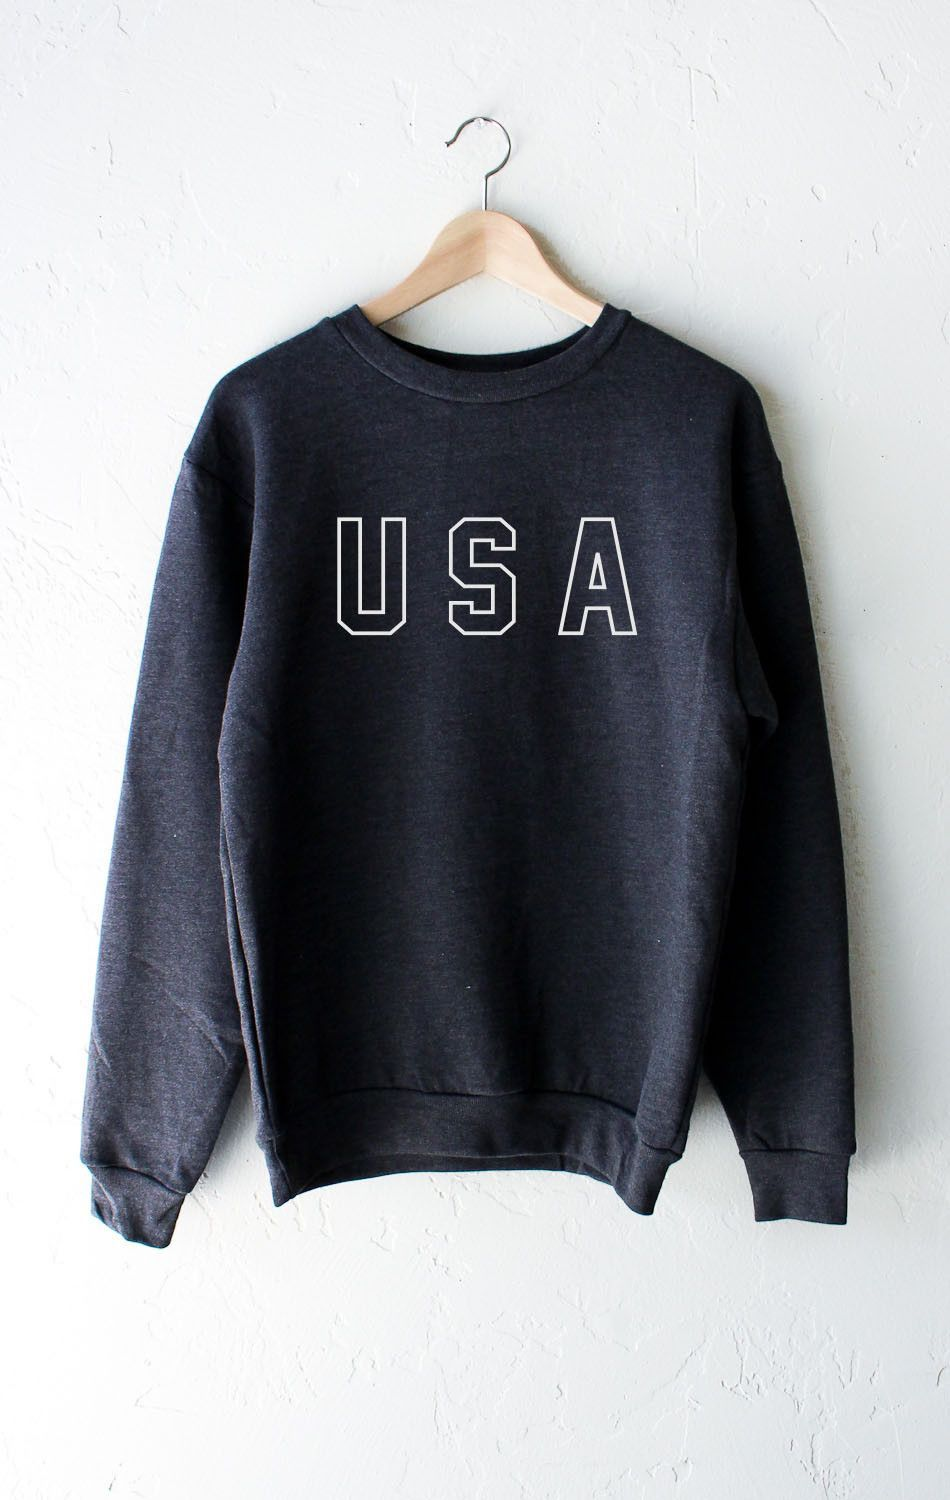 128b0a972327 Description Details  Get cozy in our soft oversized dark heather grey  sweater with print  USA . Unisex